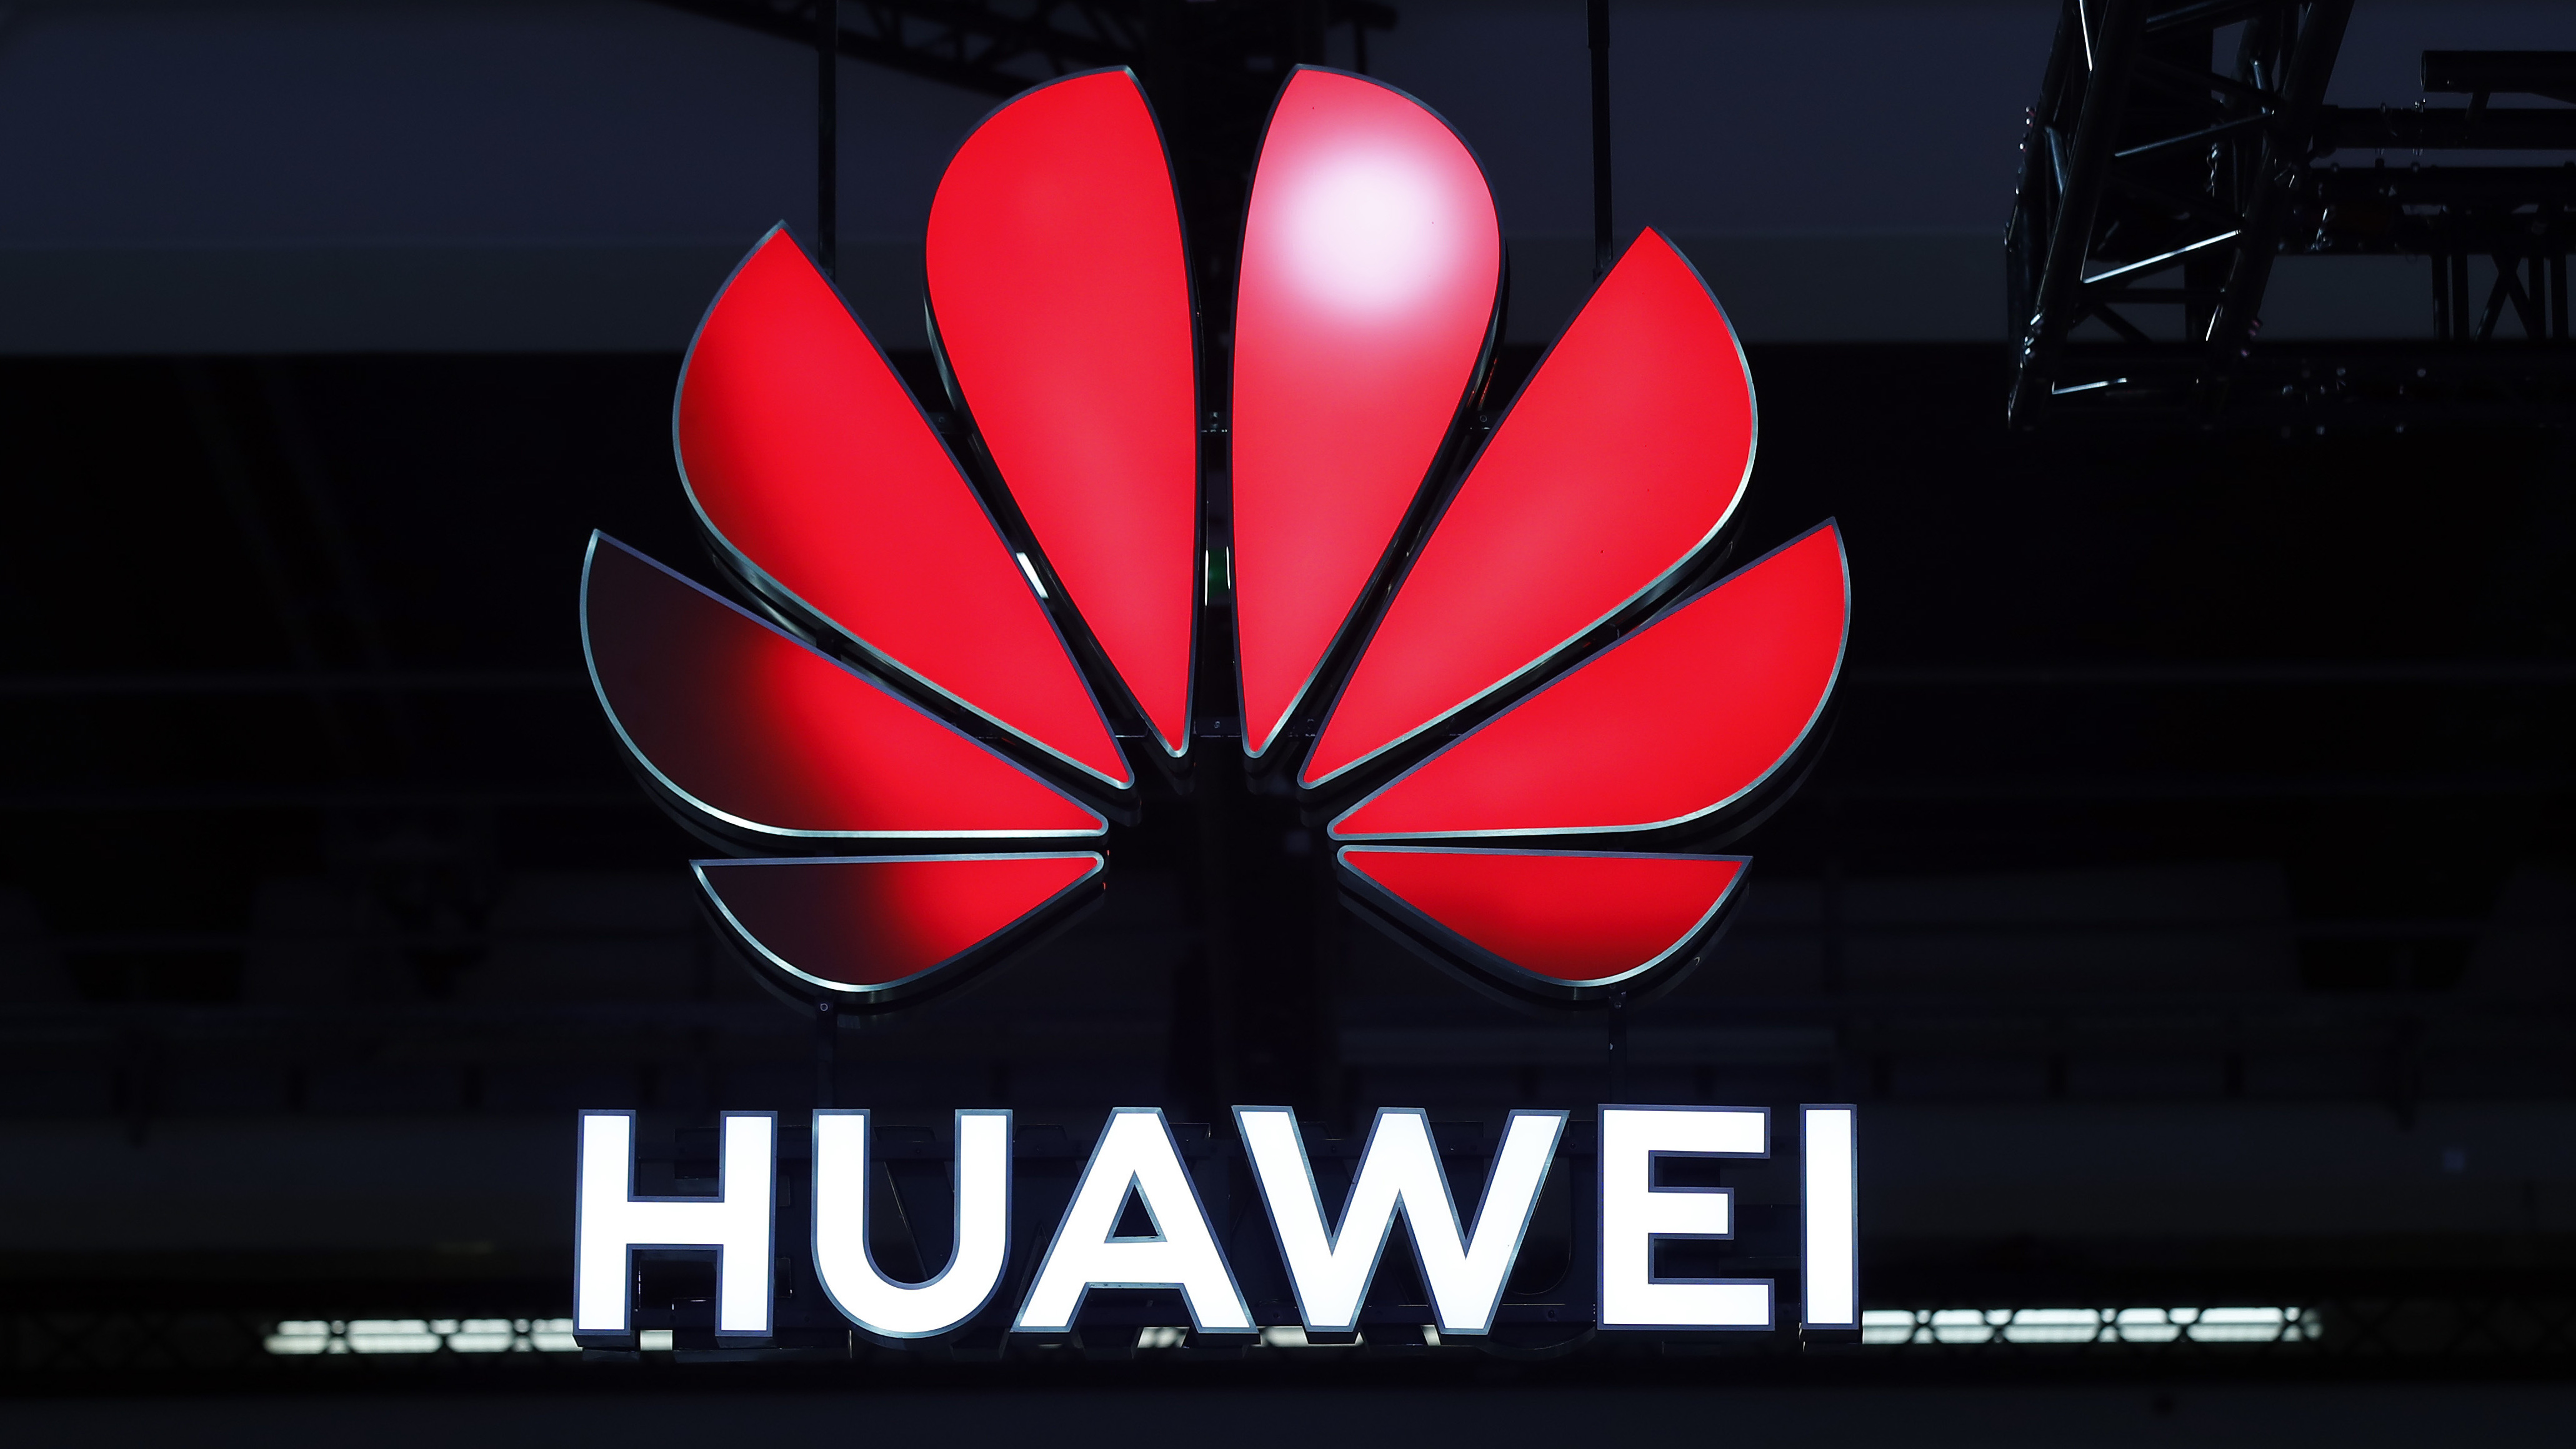 U.S. Corporations Get 90-Day Extension To Work With Huawei On Rural Networks